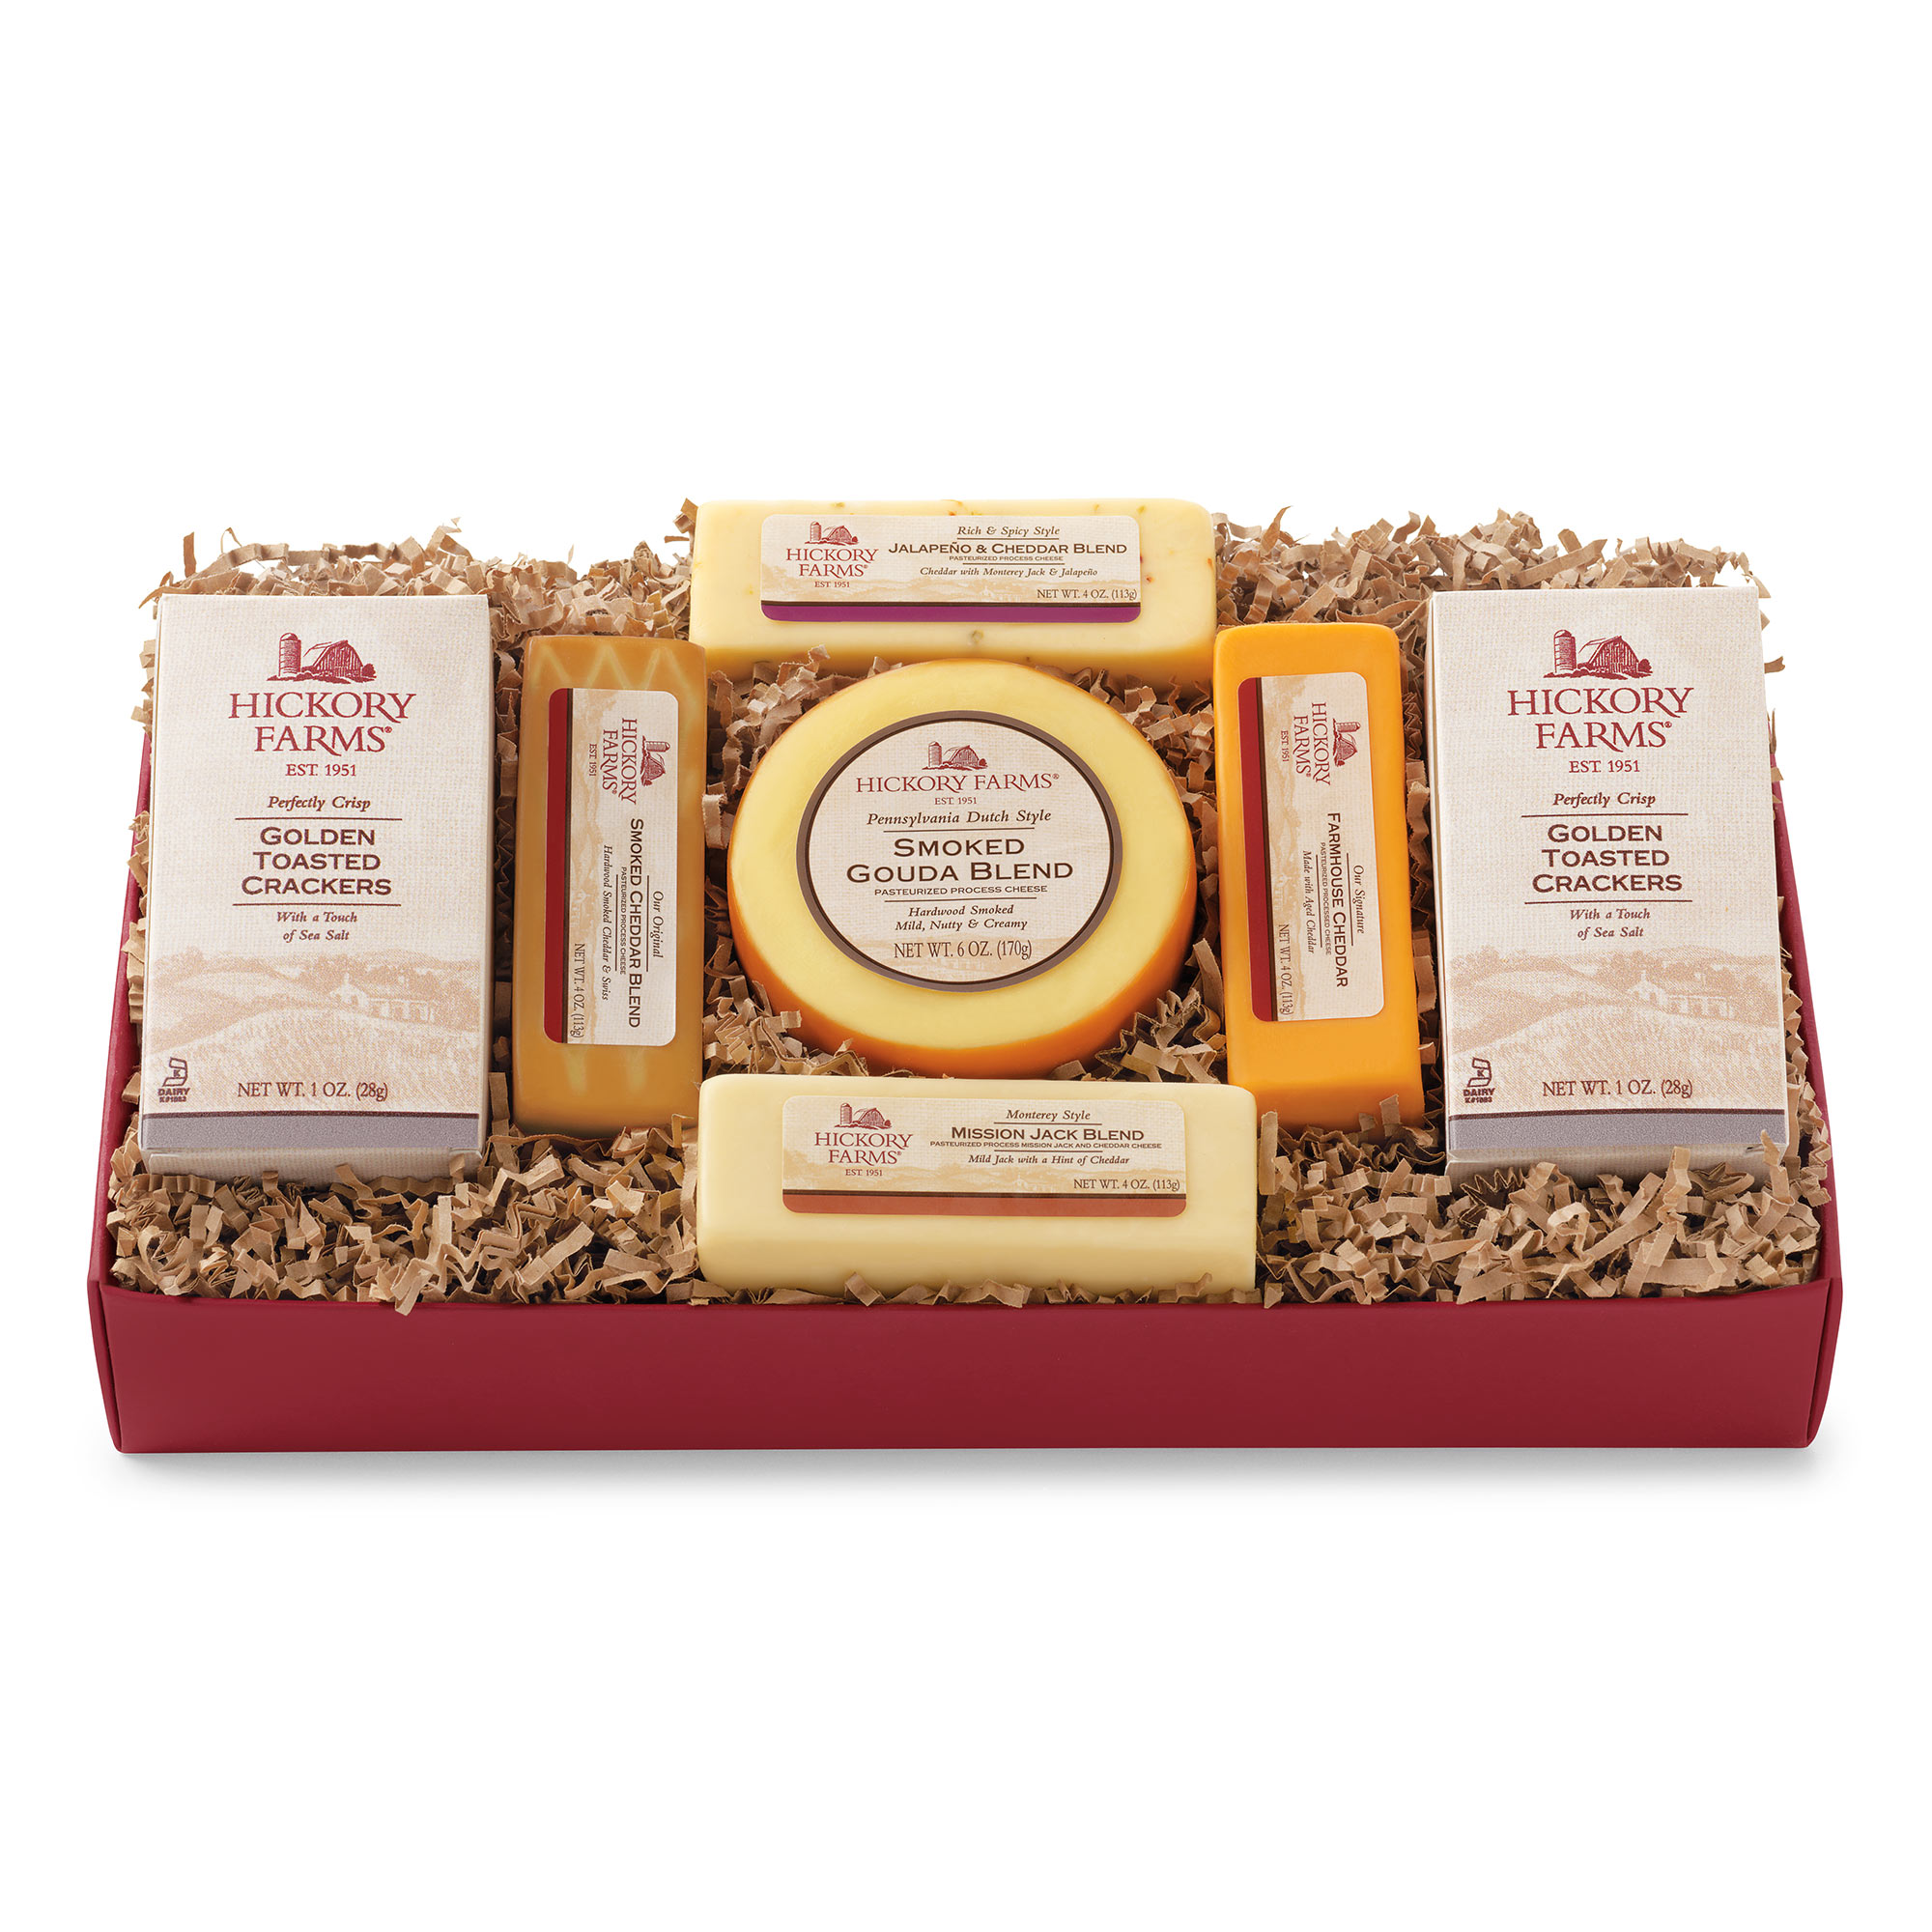 Gourmet cheese gift baskets hickory farms hickory farms festive cheese sampler negle Images